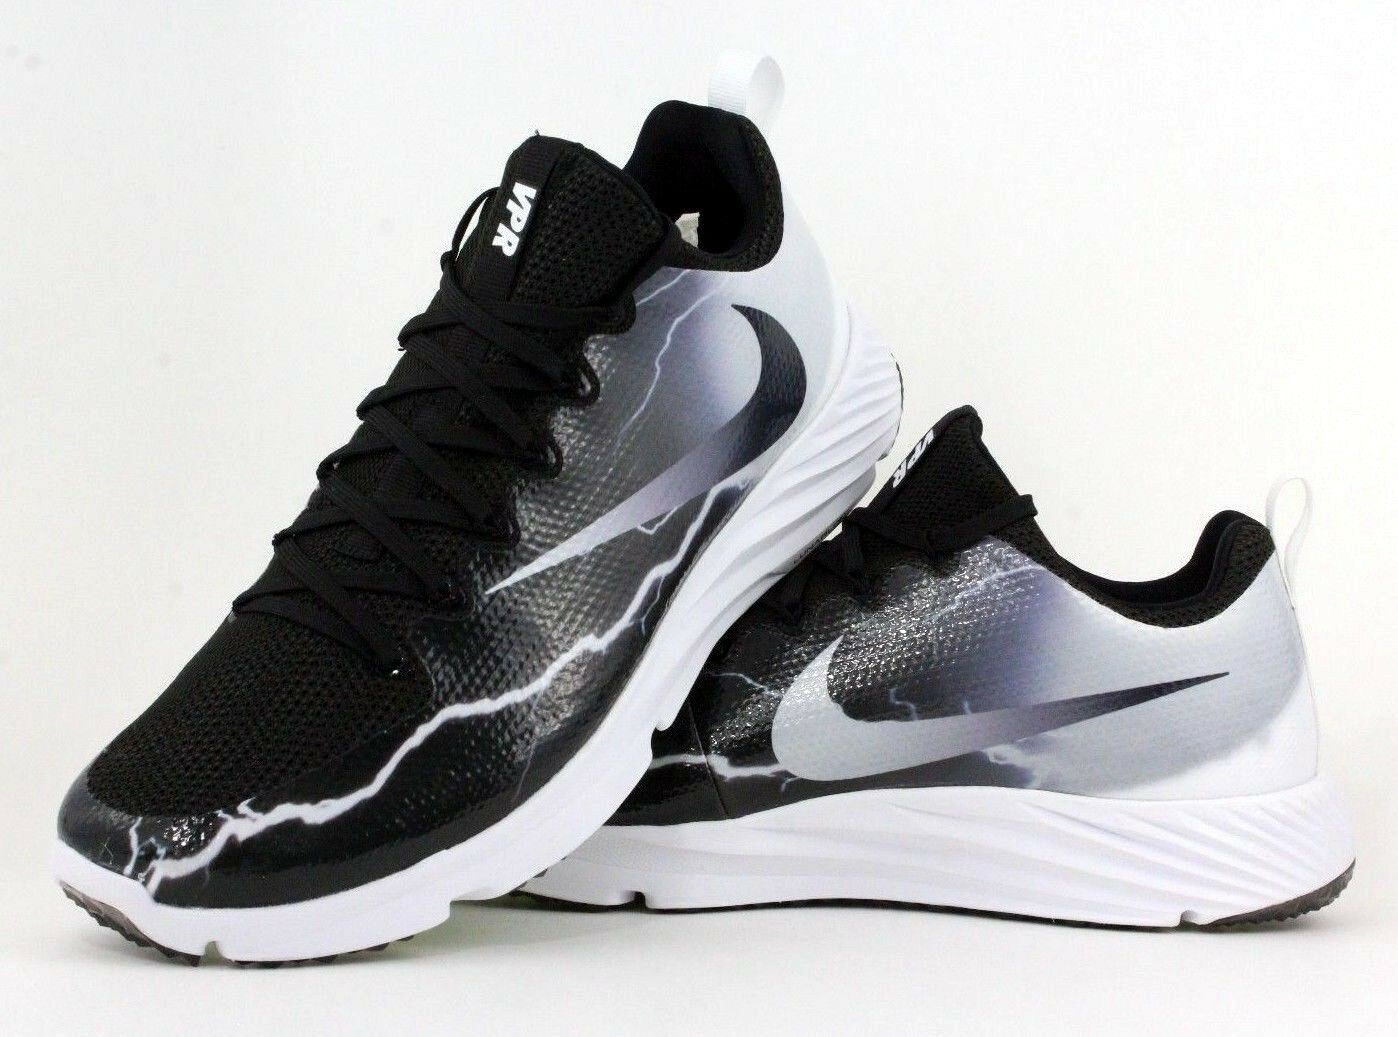 Nike Vapor Speed Turf Lighting Turf Training Athletic Shoes 847100-010 Men Price reduction Special limited time